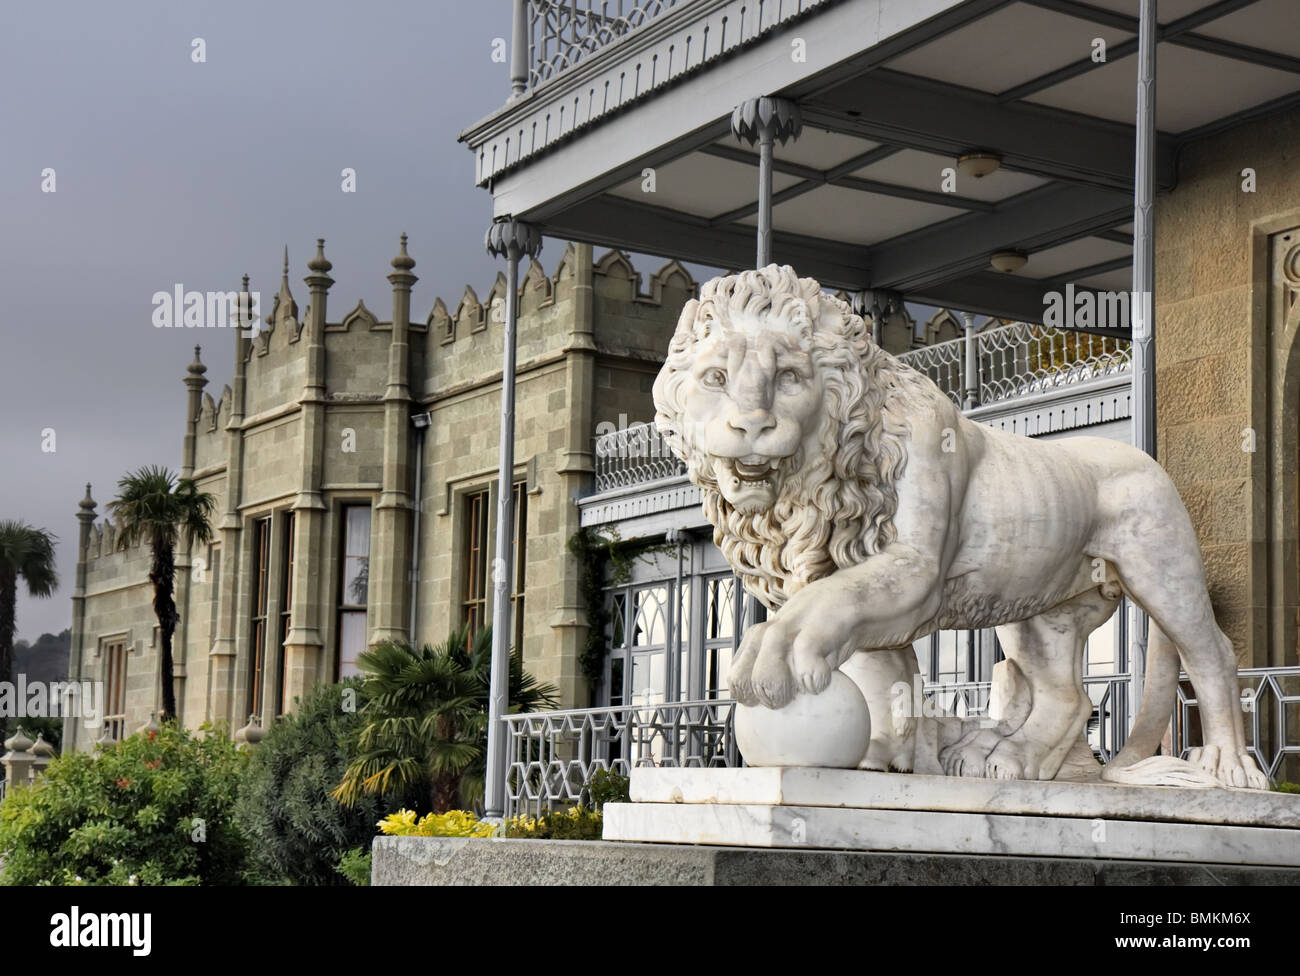 Marble sculpture of lion by the Vorontsovsky palace - Stock Image